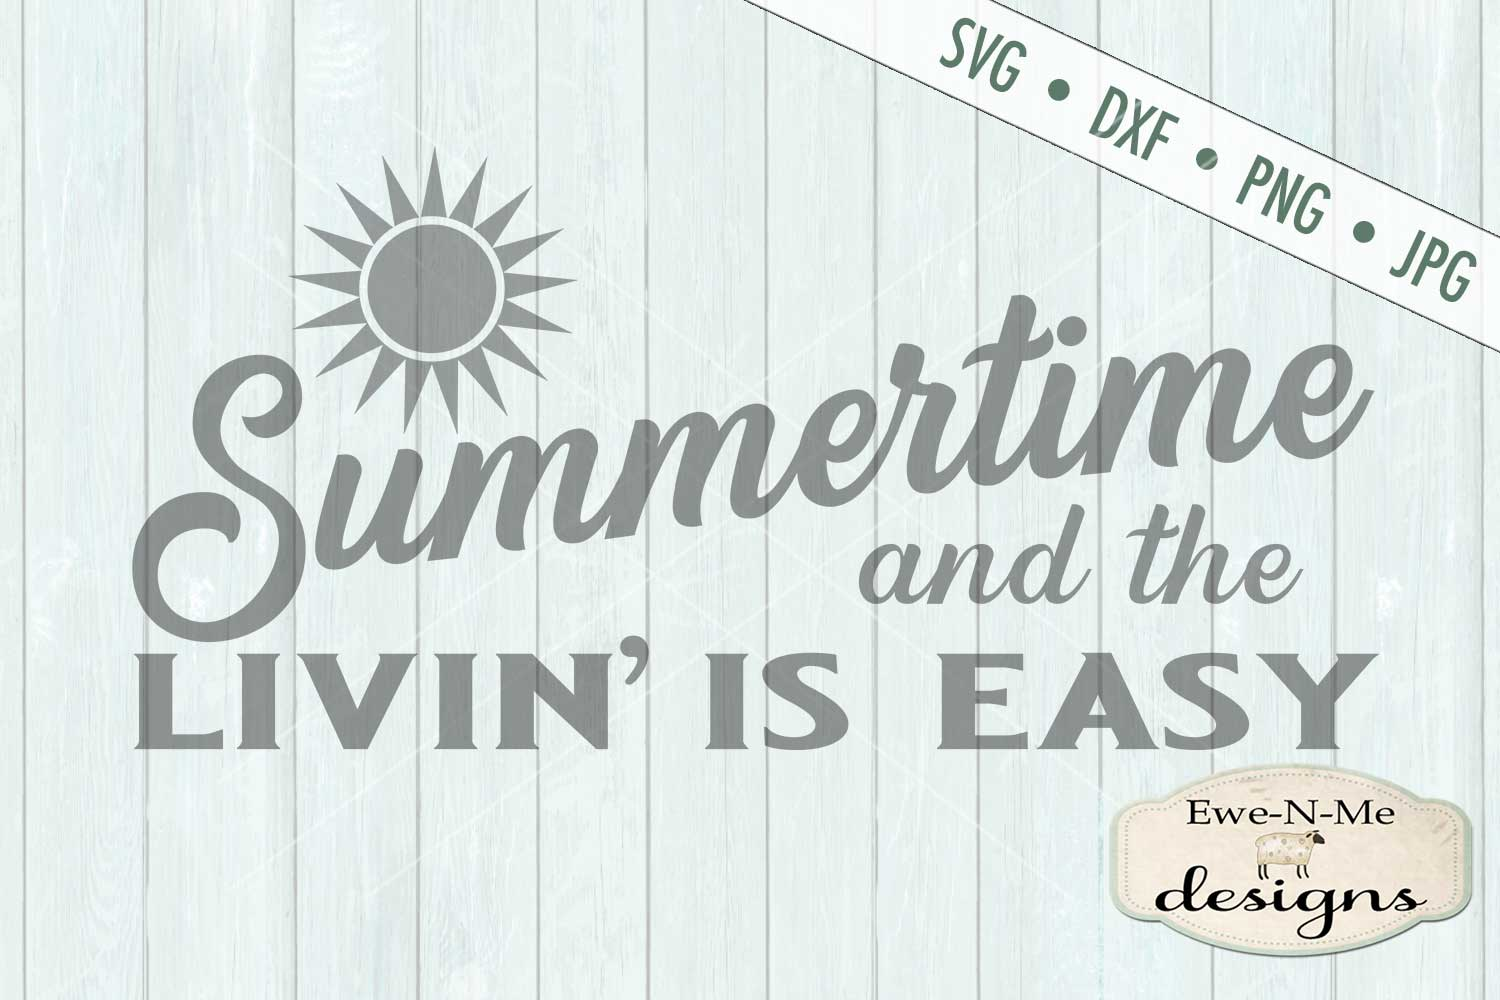 Summertime Livin Is Easy SVG DXF Files example image 2